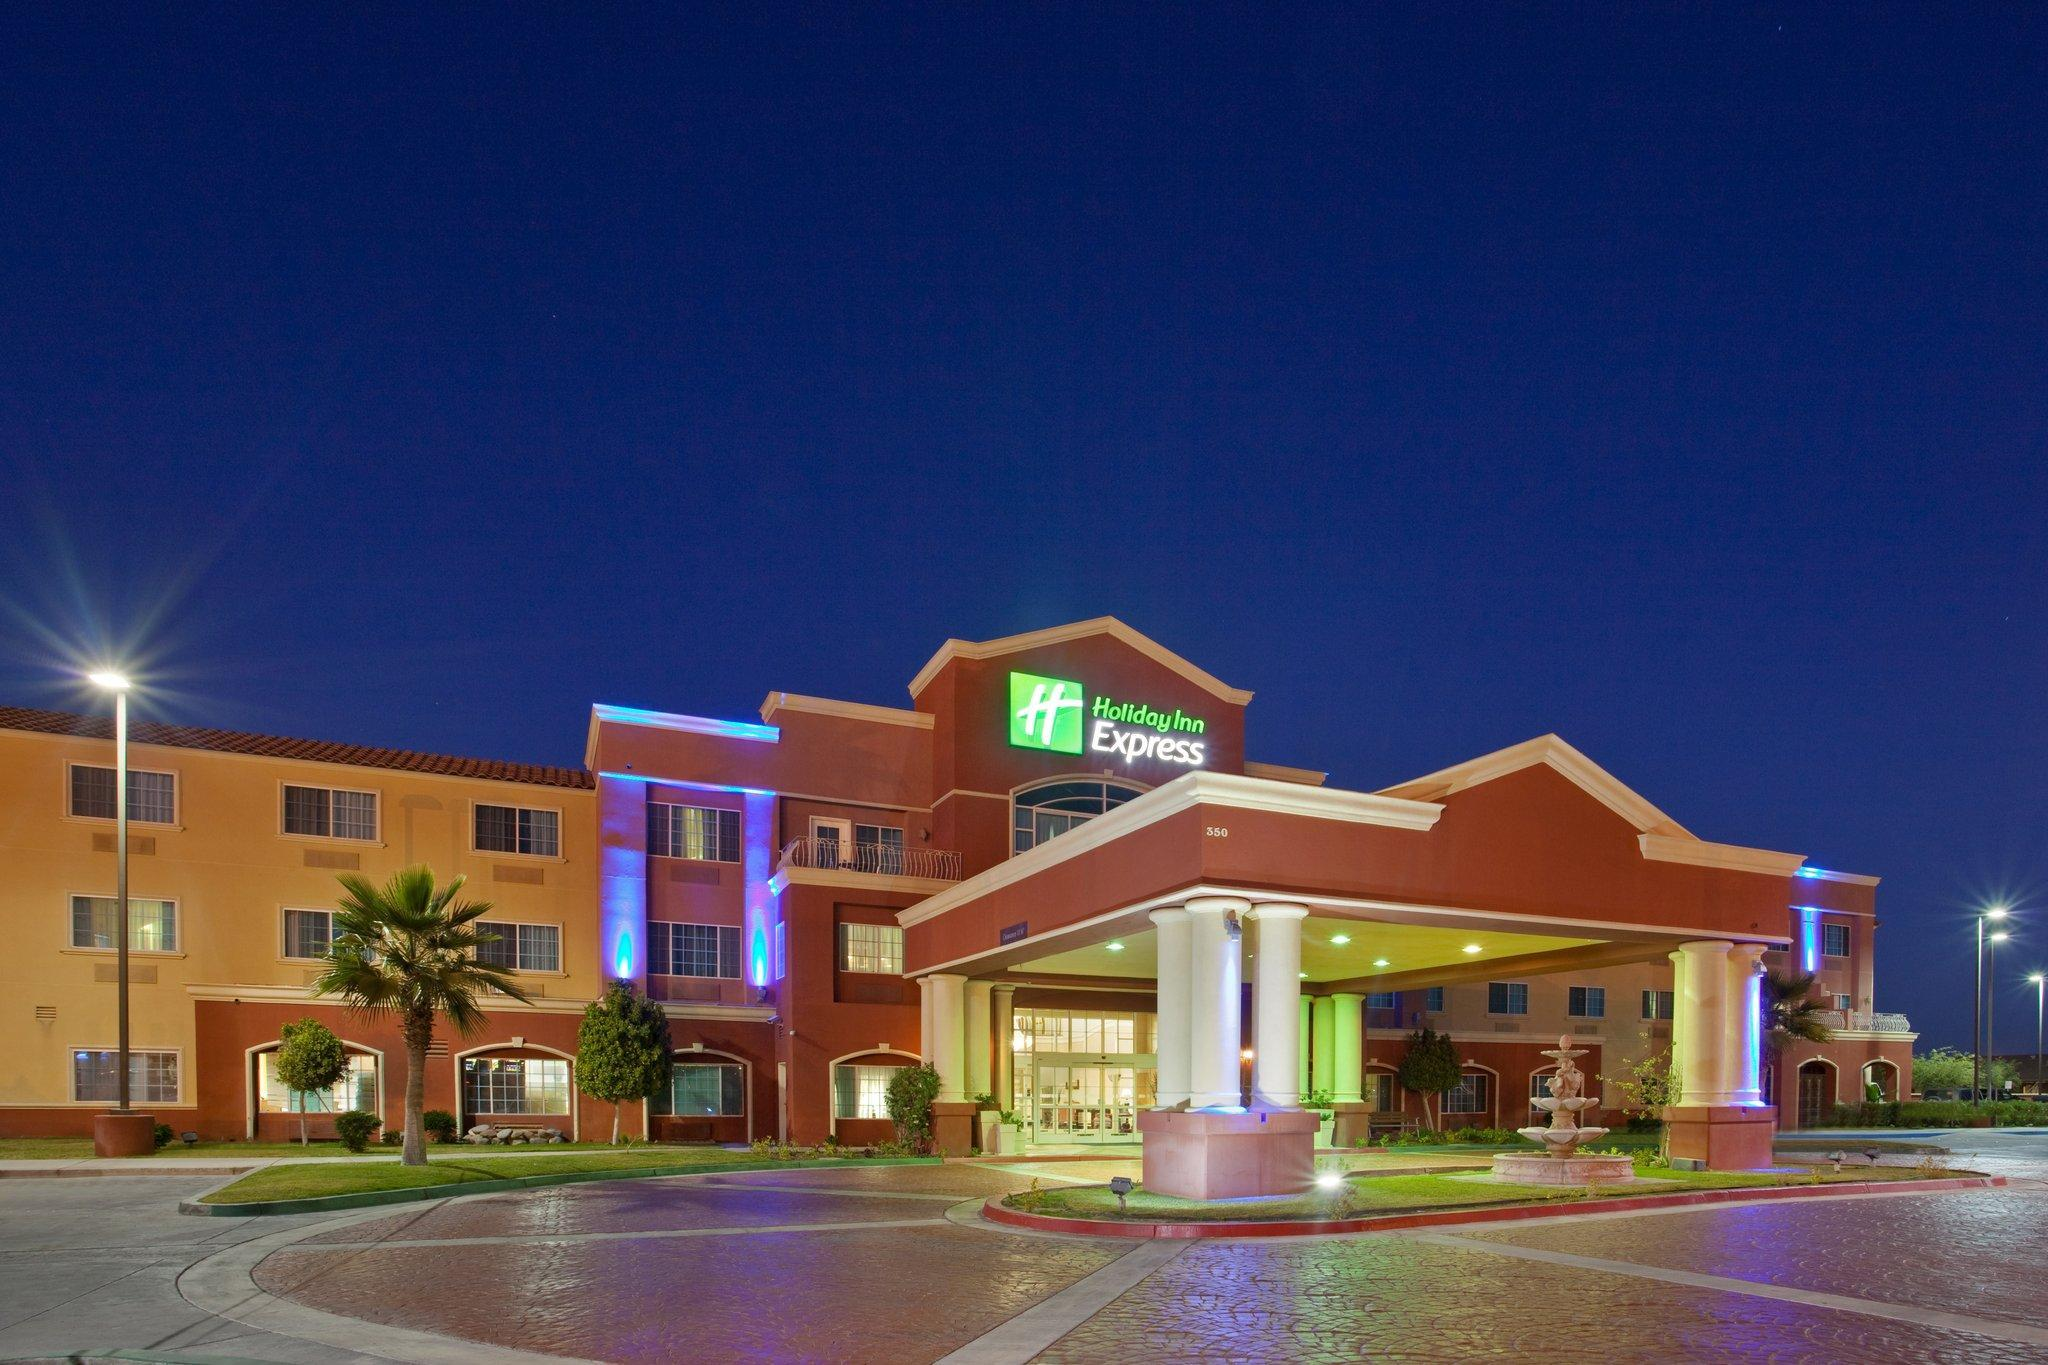 Holiday Inn Express Hotel And Suites El Centro